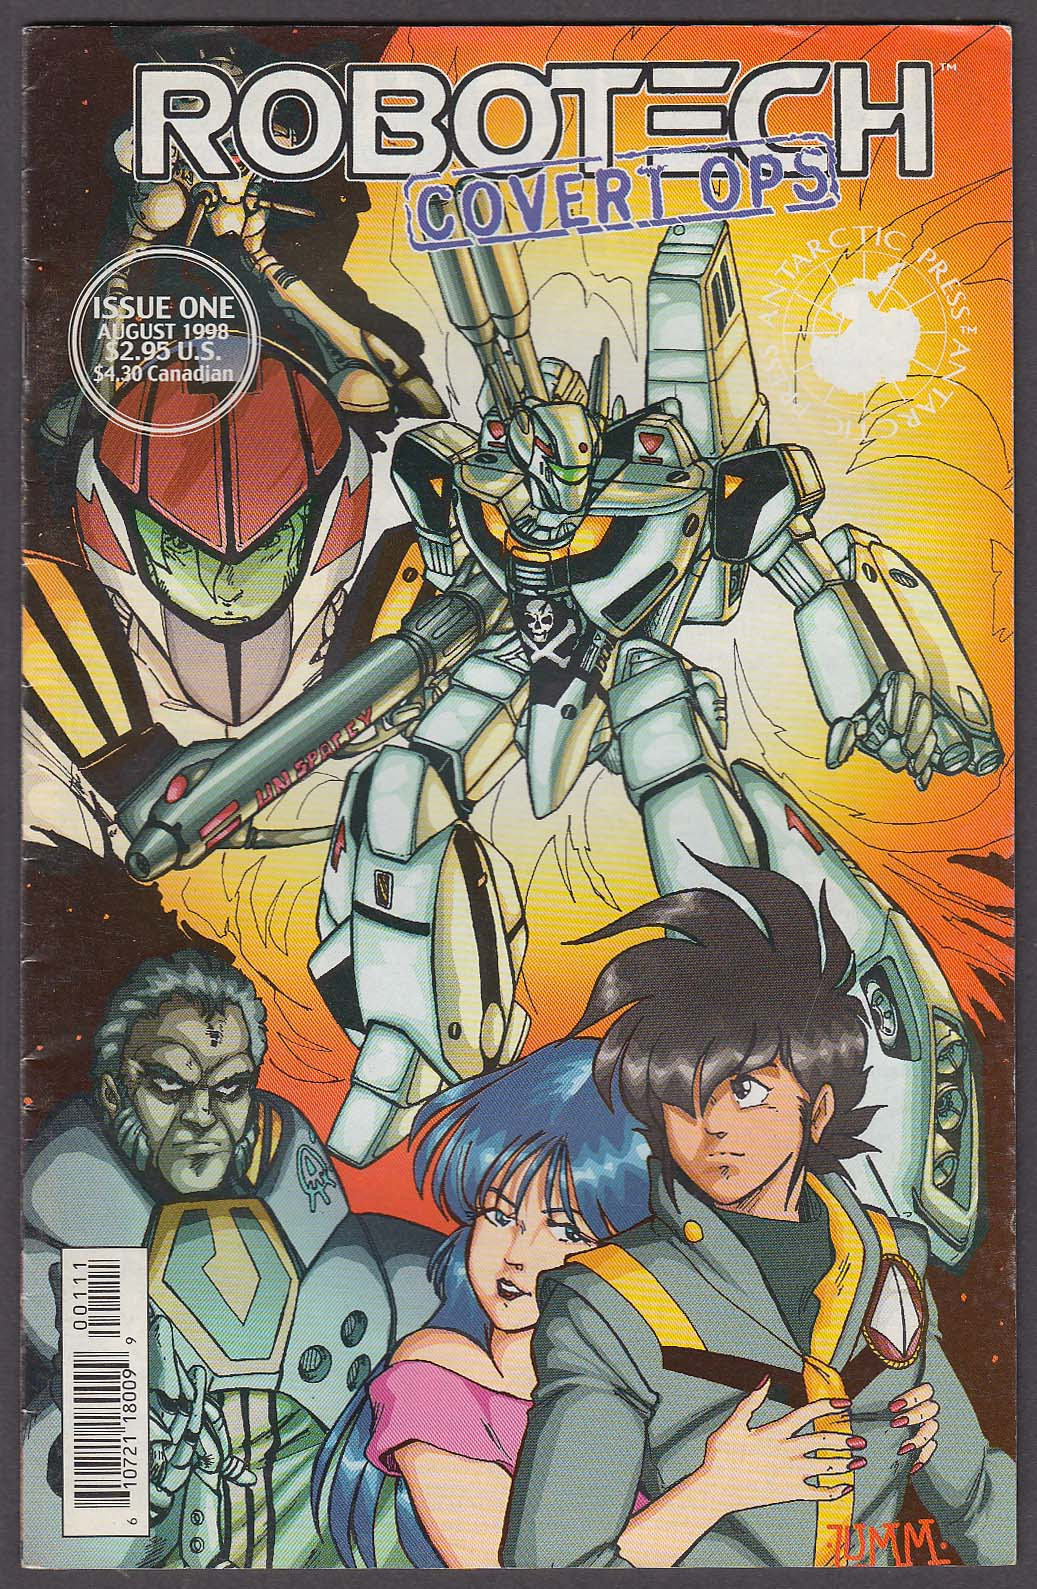 Image for ROBOTECH COVERT OPS #1 Antarctic comic book 8 1998